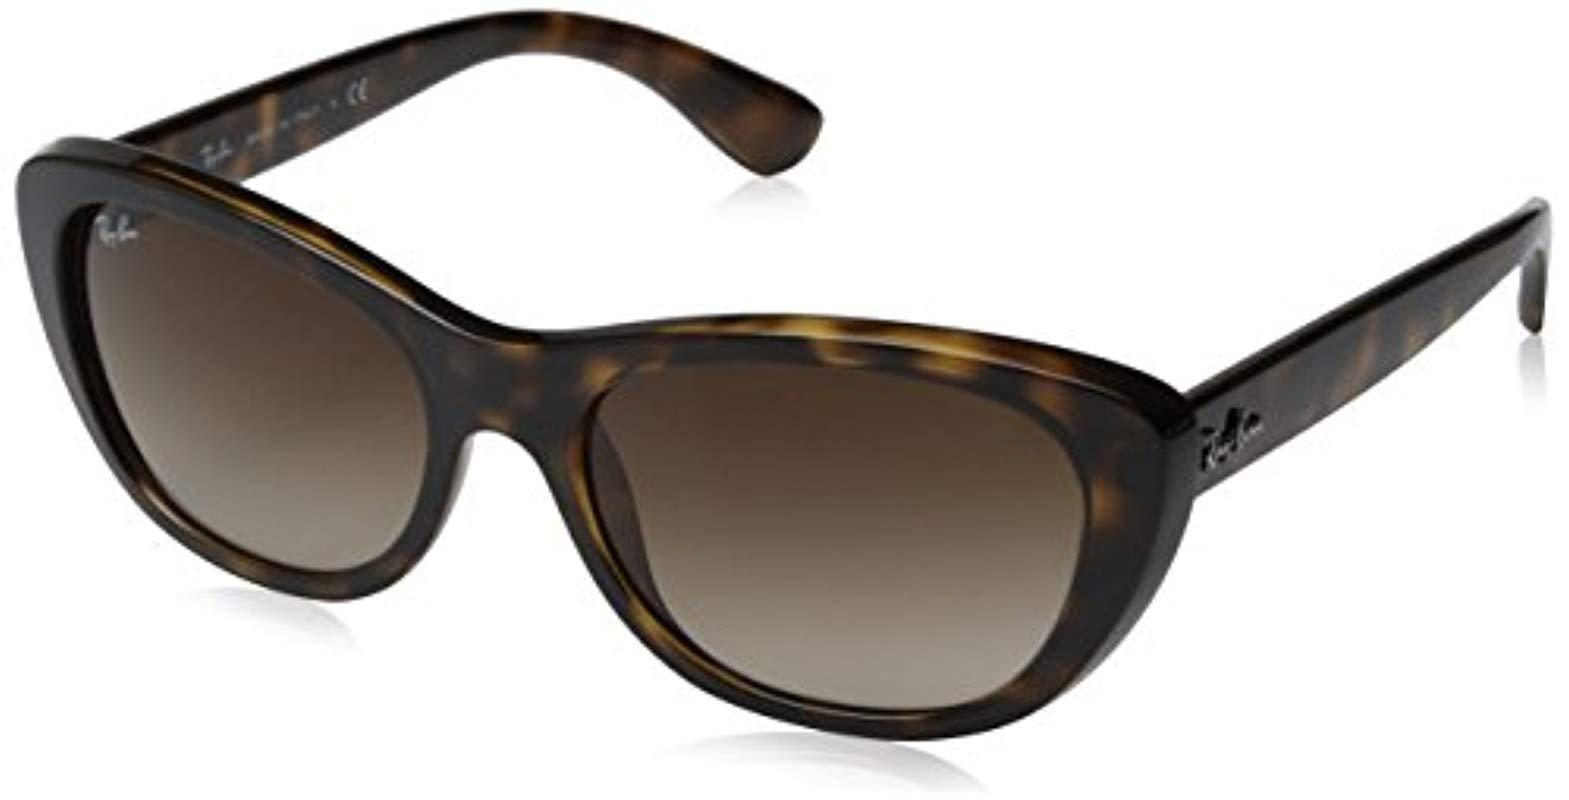 24c133c649 Ray-Ban Sonnenbrille (rb 4227) in Black - Lyst